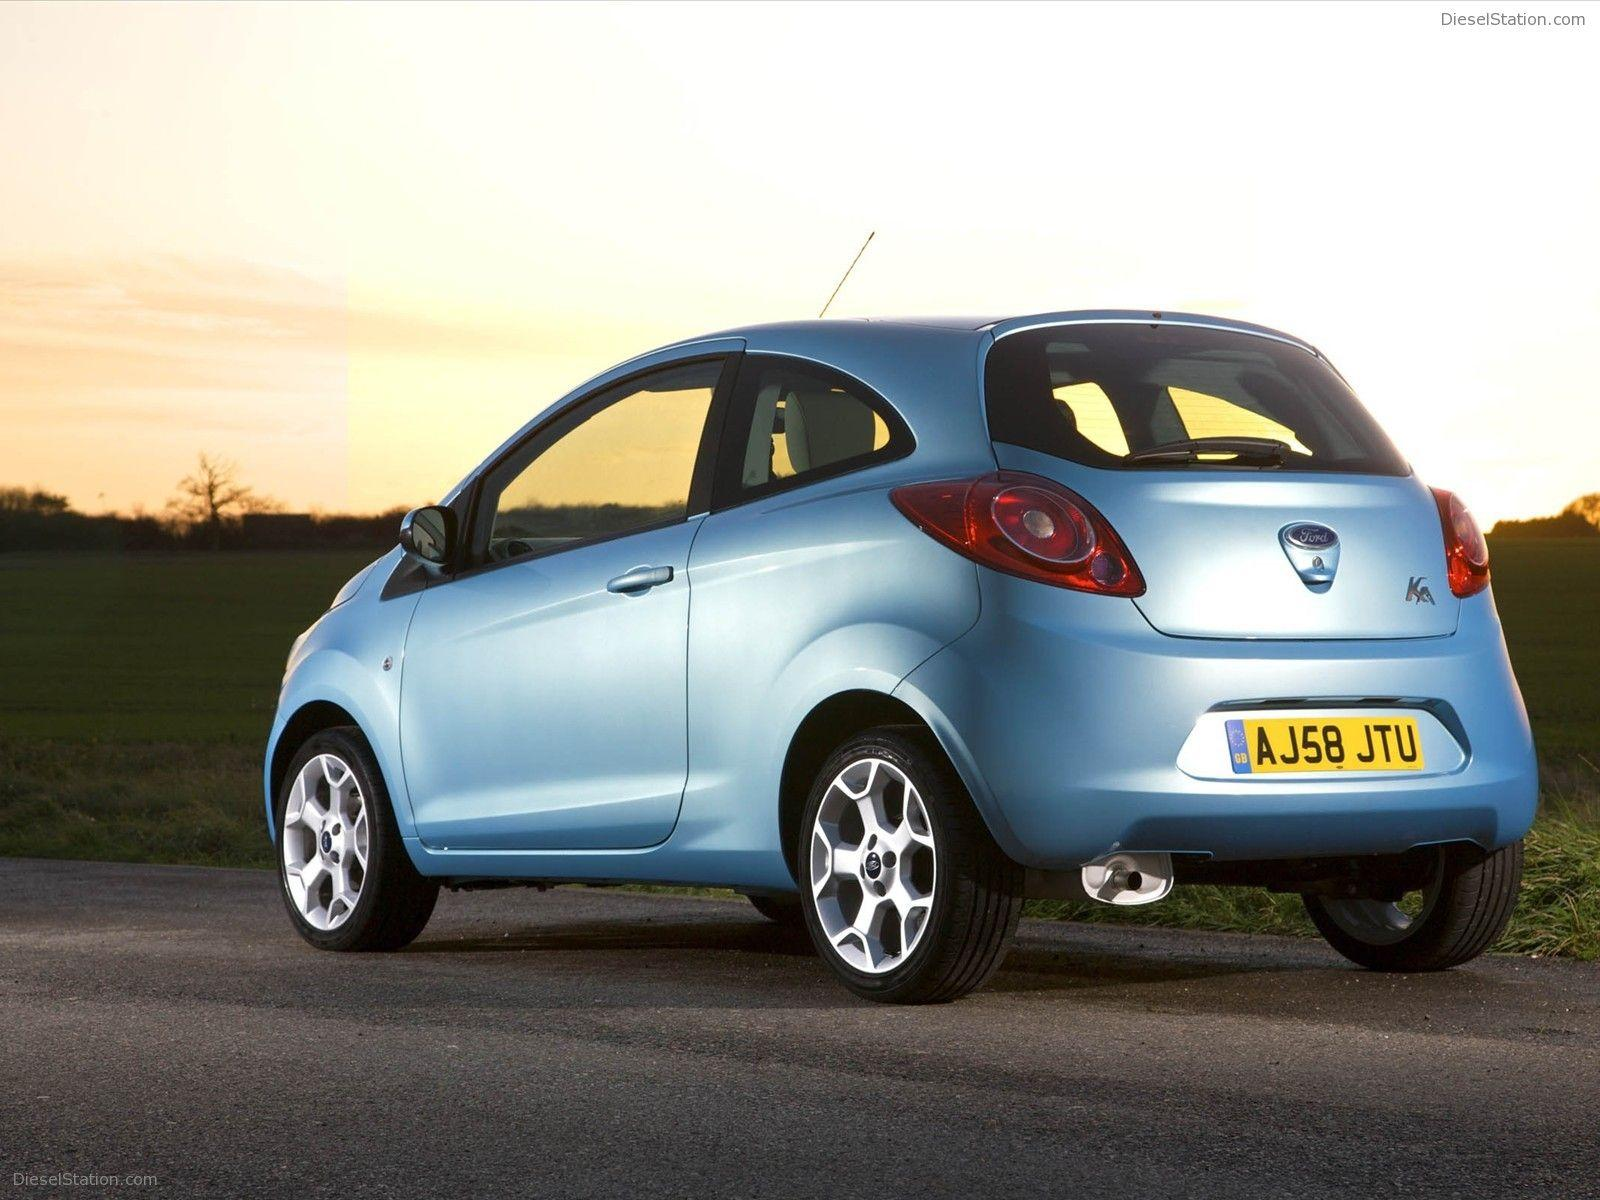 Ford Ka 2010 Exotic Car Wallpapers #08 of 30 : Diesel Station